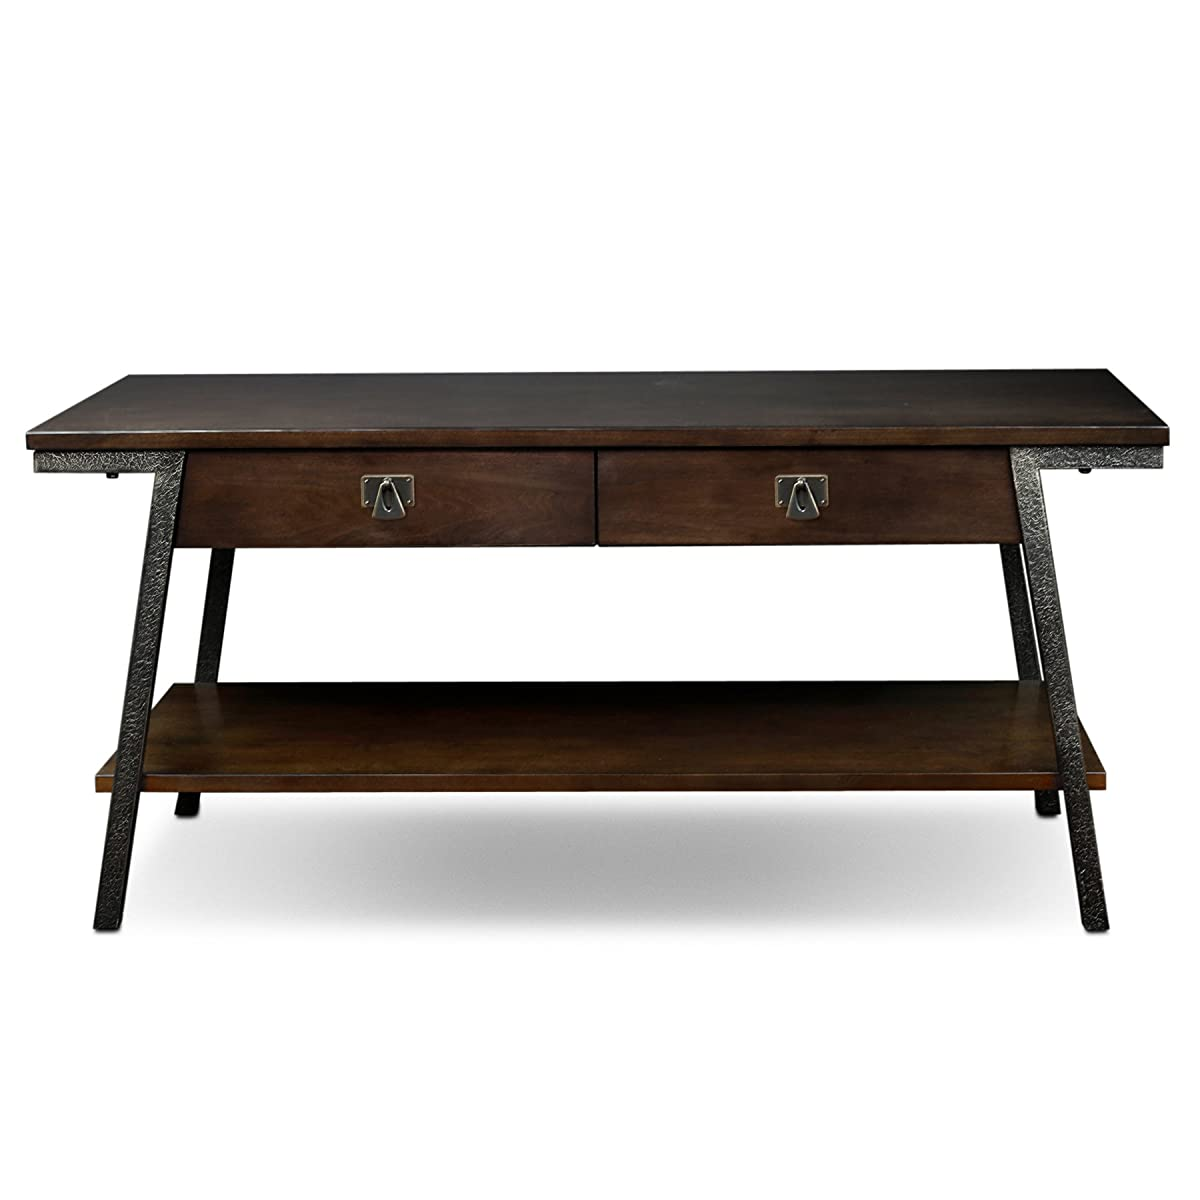 Leick 11404 Empiria Modern Industrial Two Drawer Coffee Table - Walnut